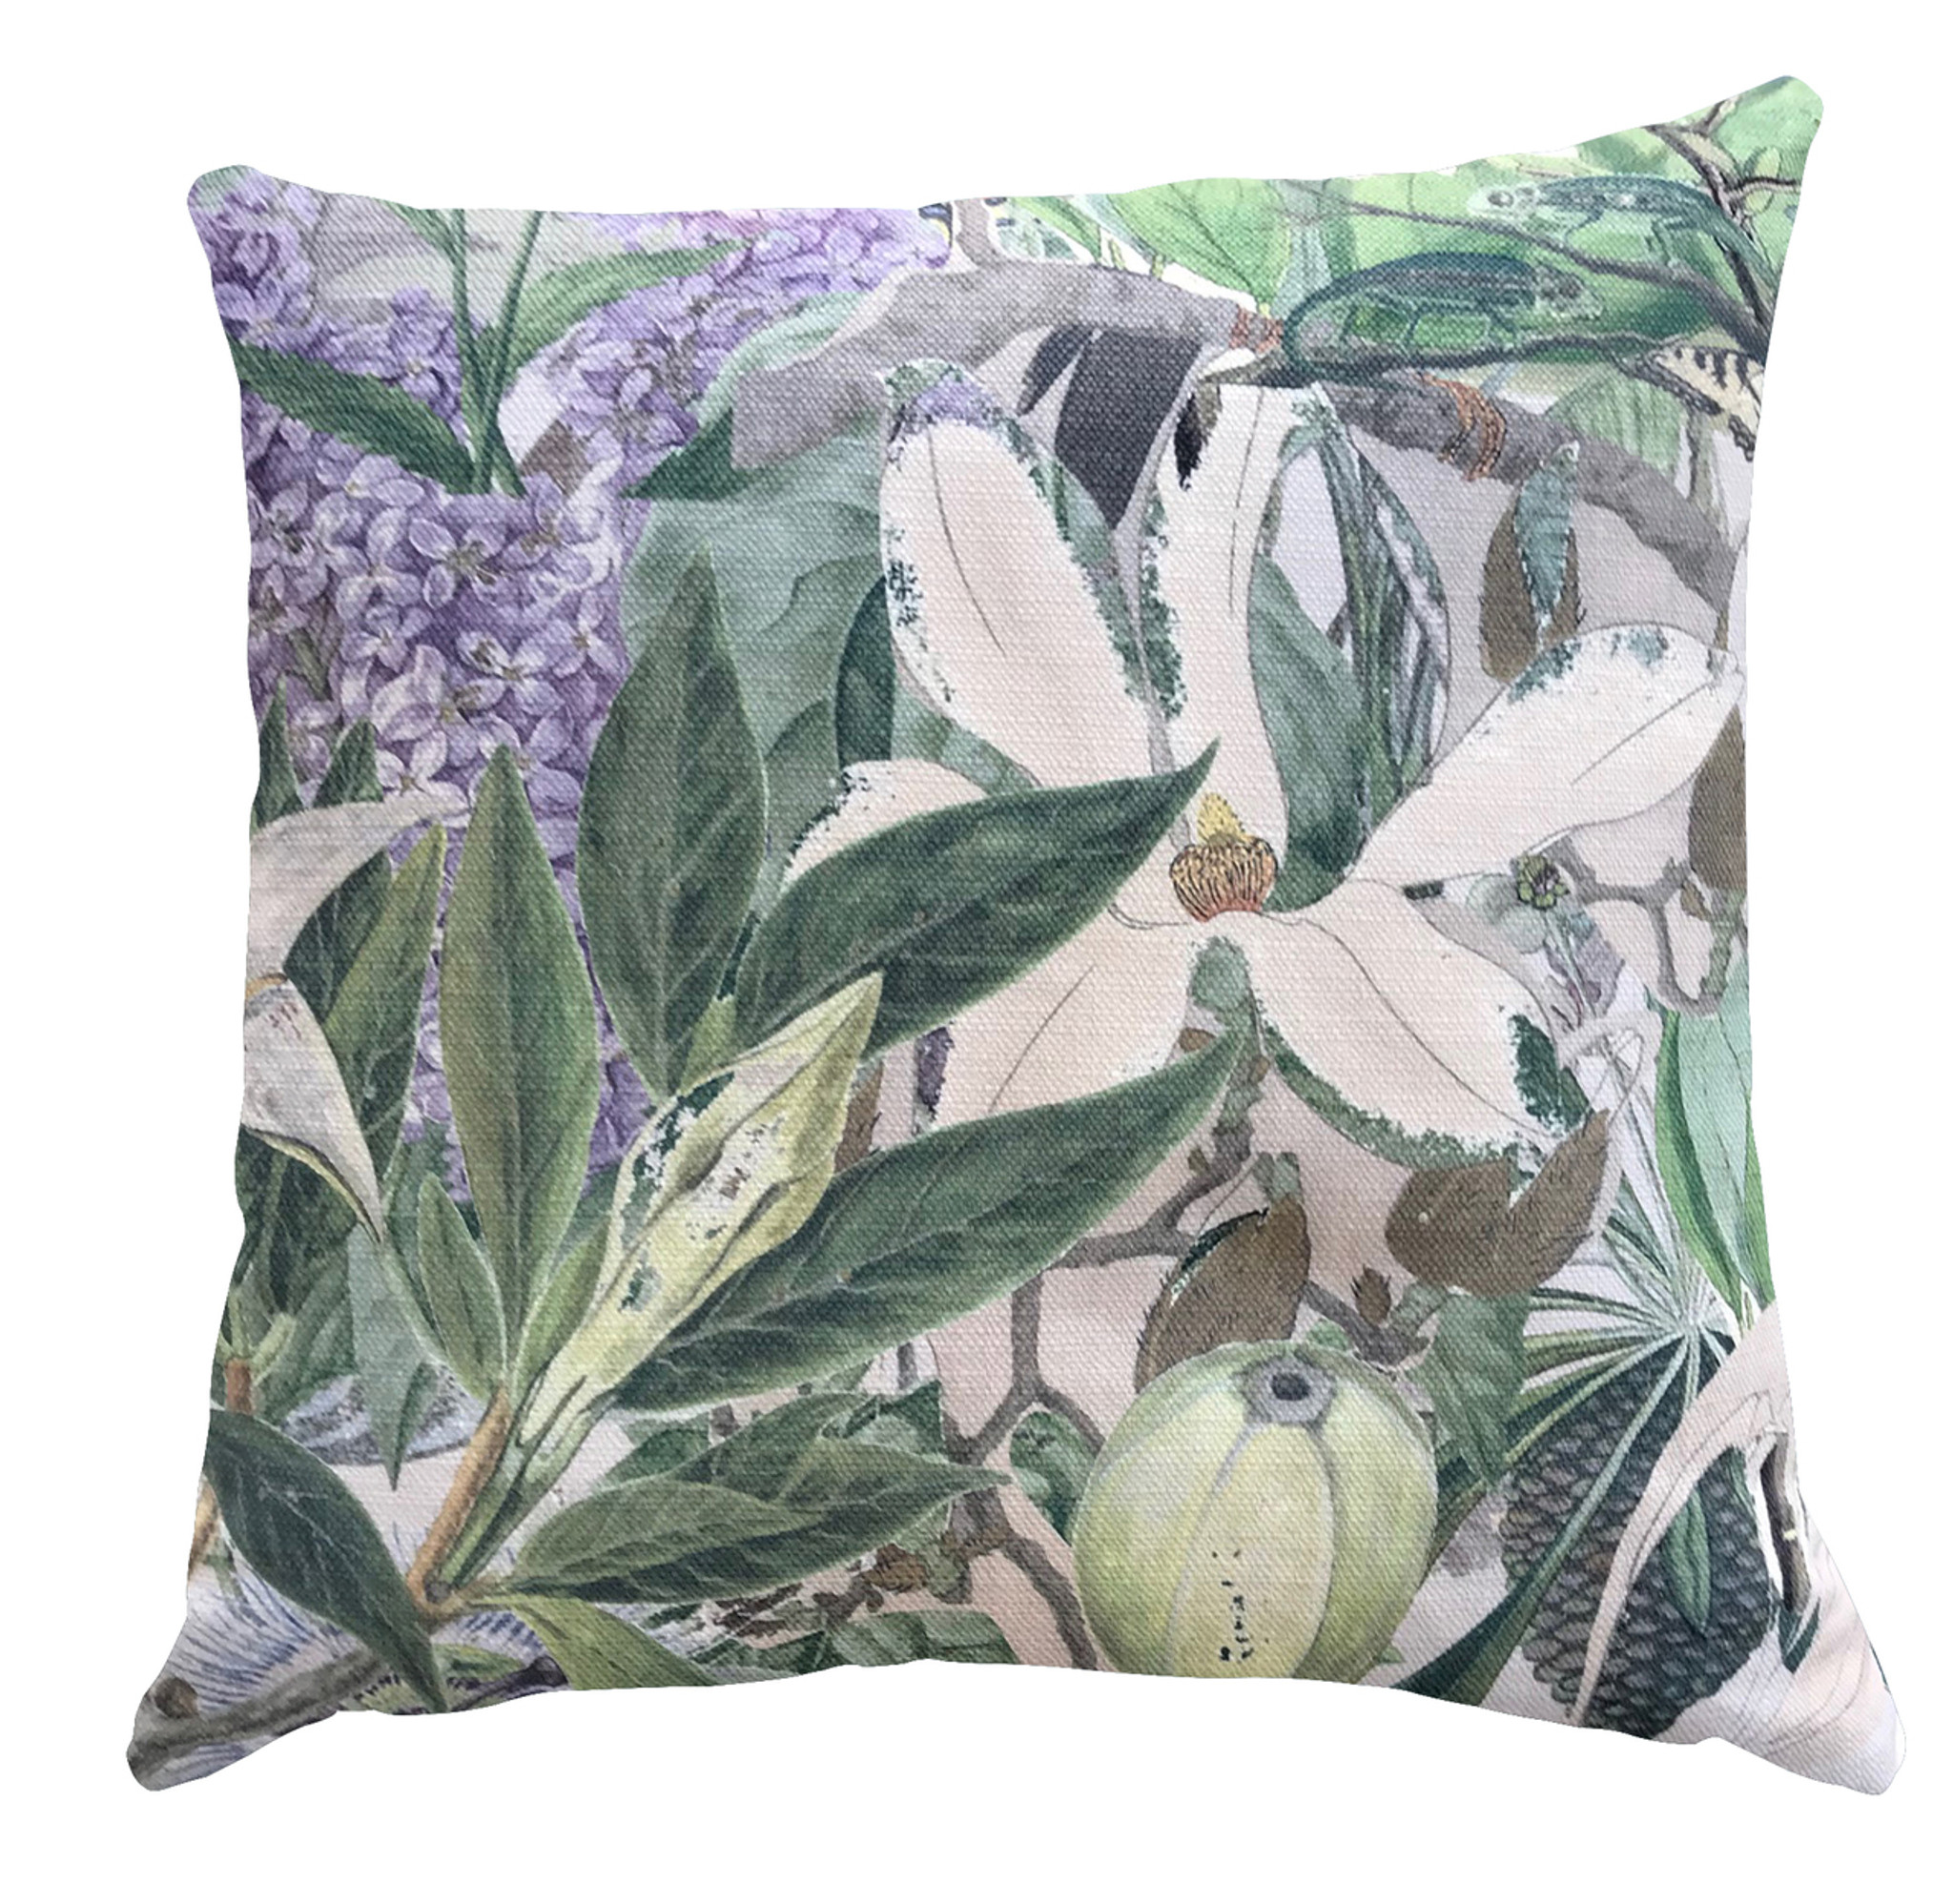 Cushion - Wild Bunch - Wysteria